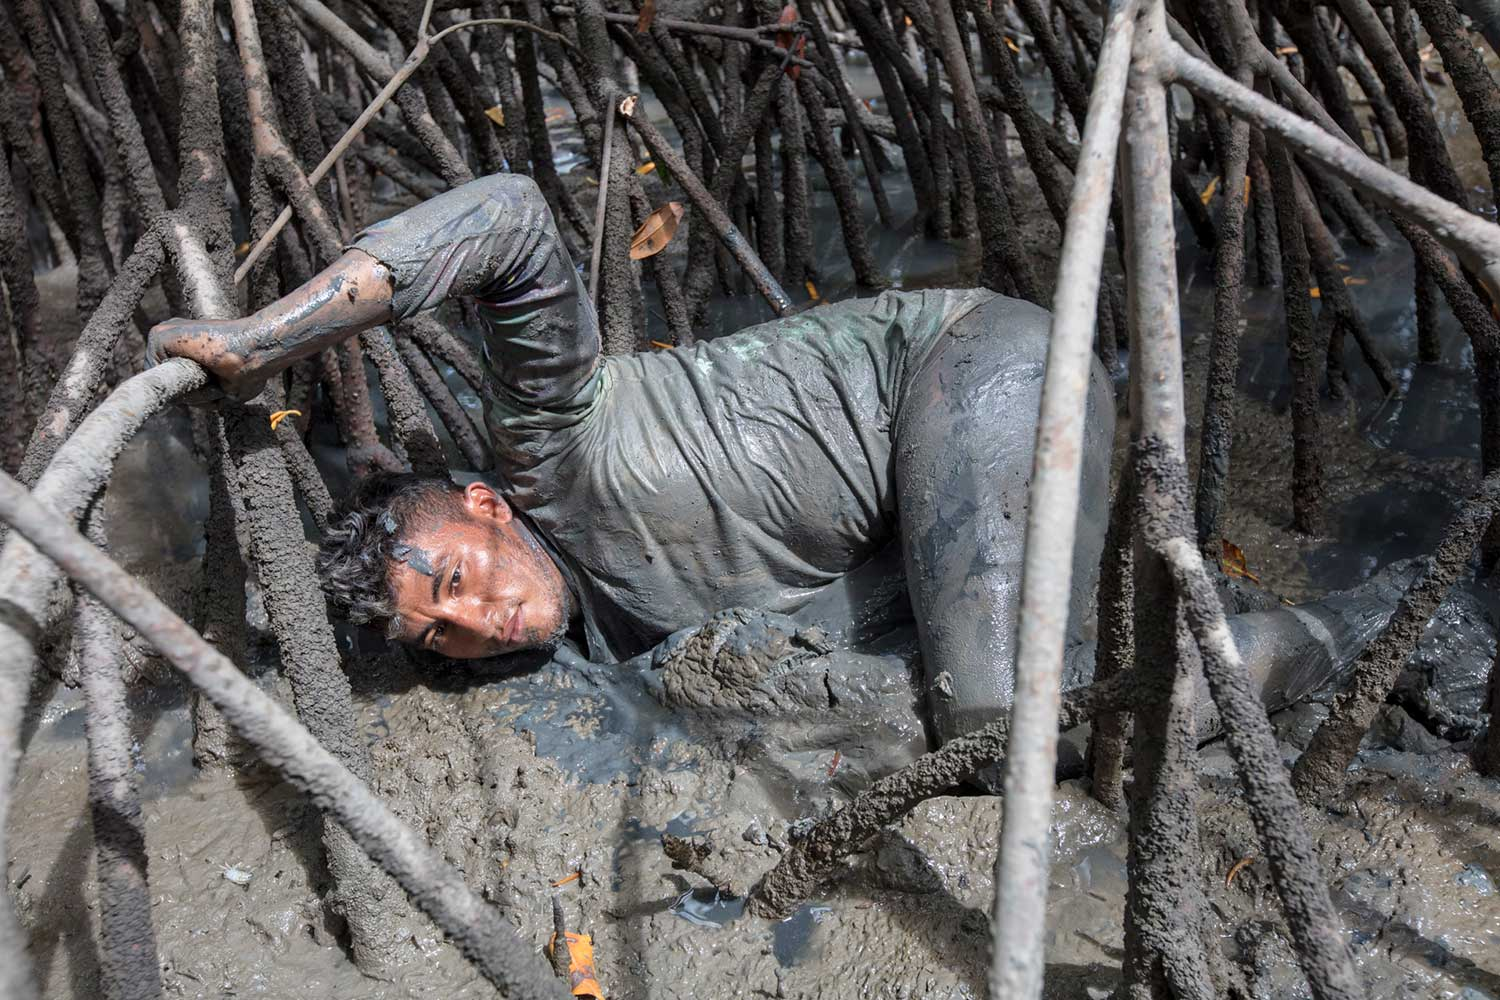 Man in mangrove mud